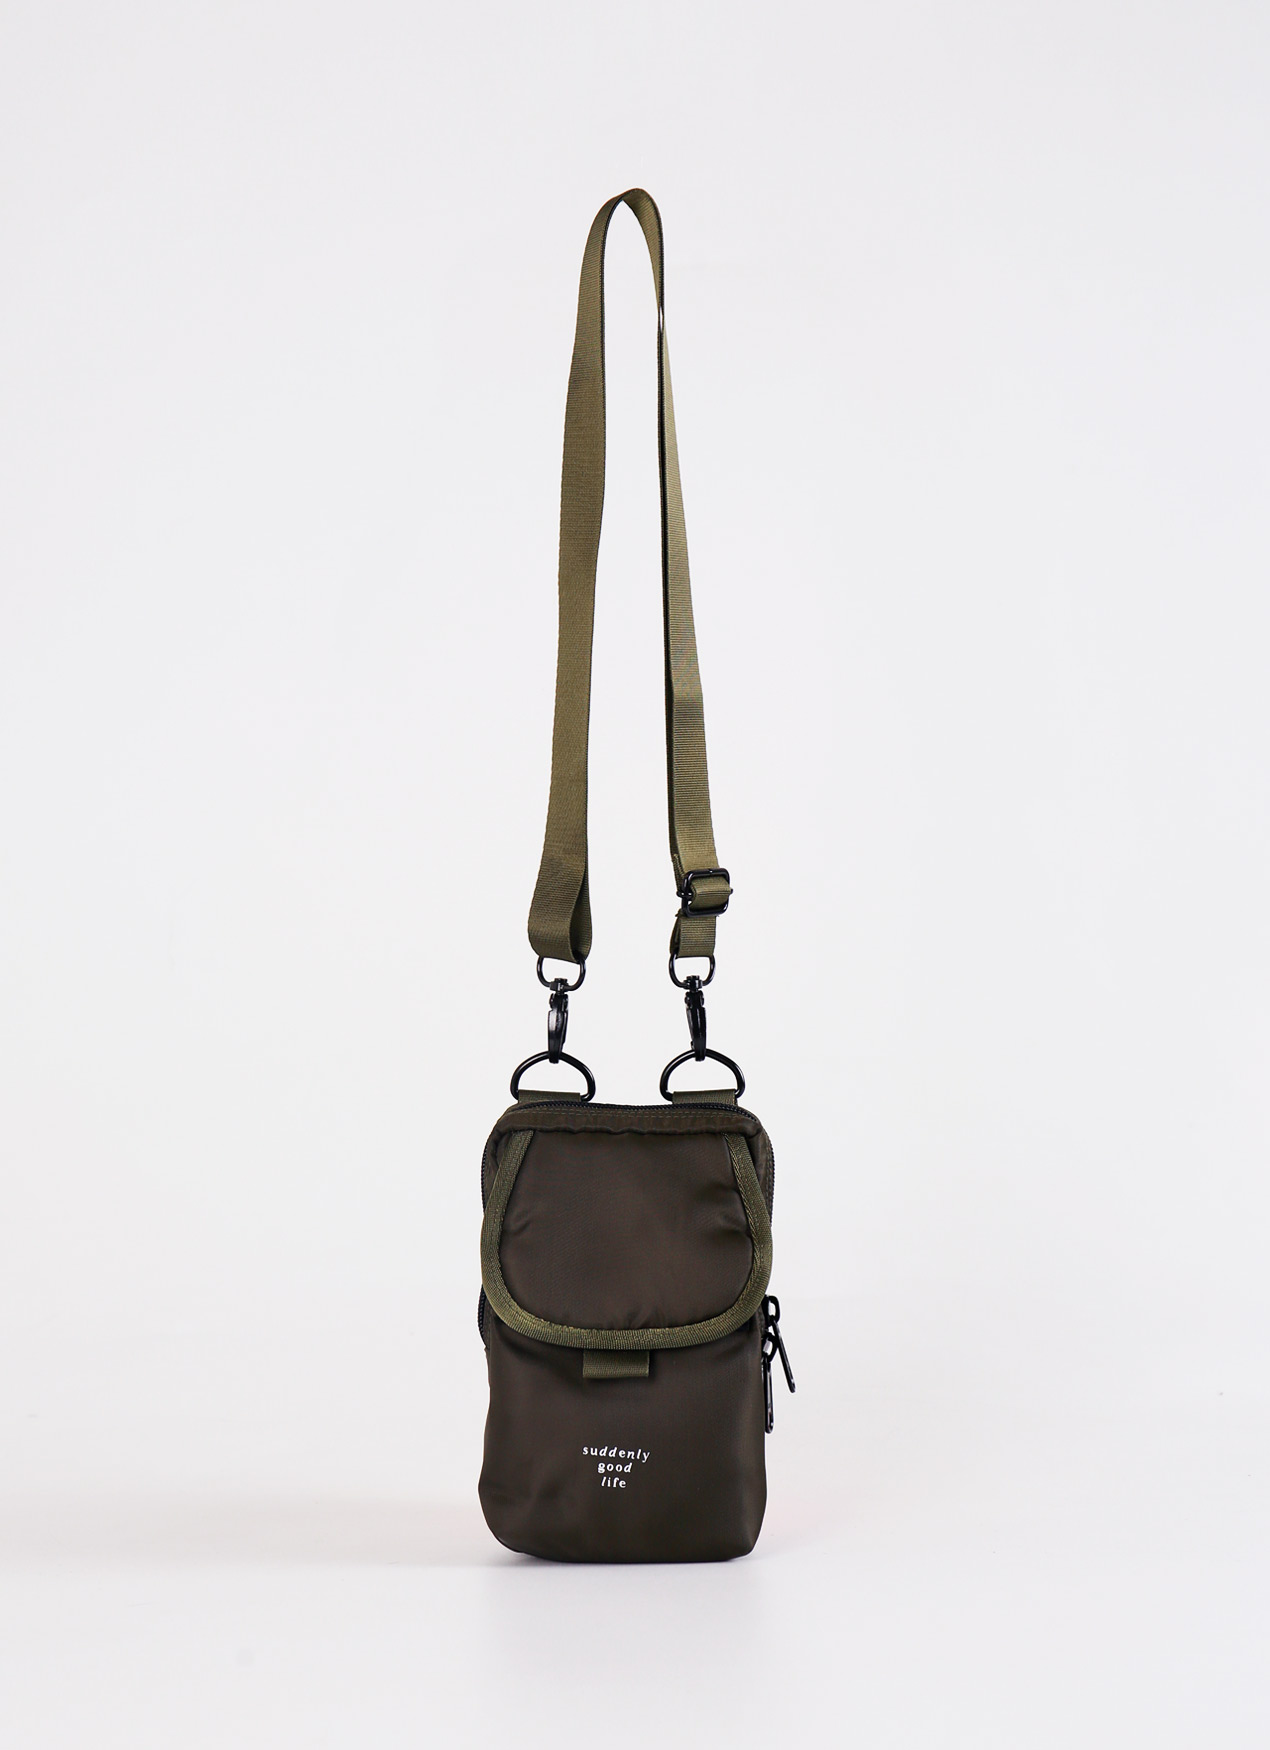 suddenly good life ##/03 Sling Bag - Dark Green